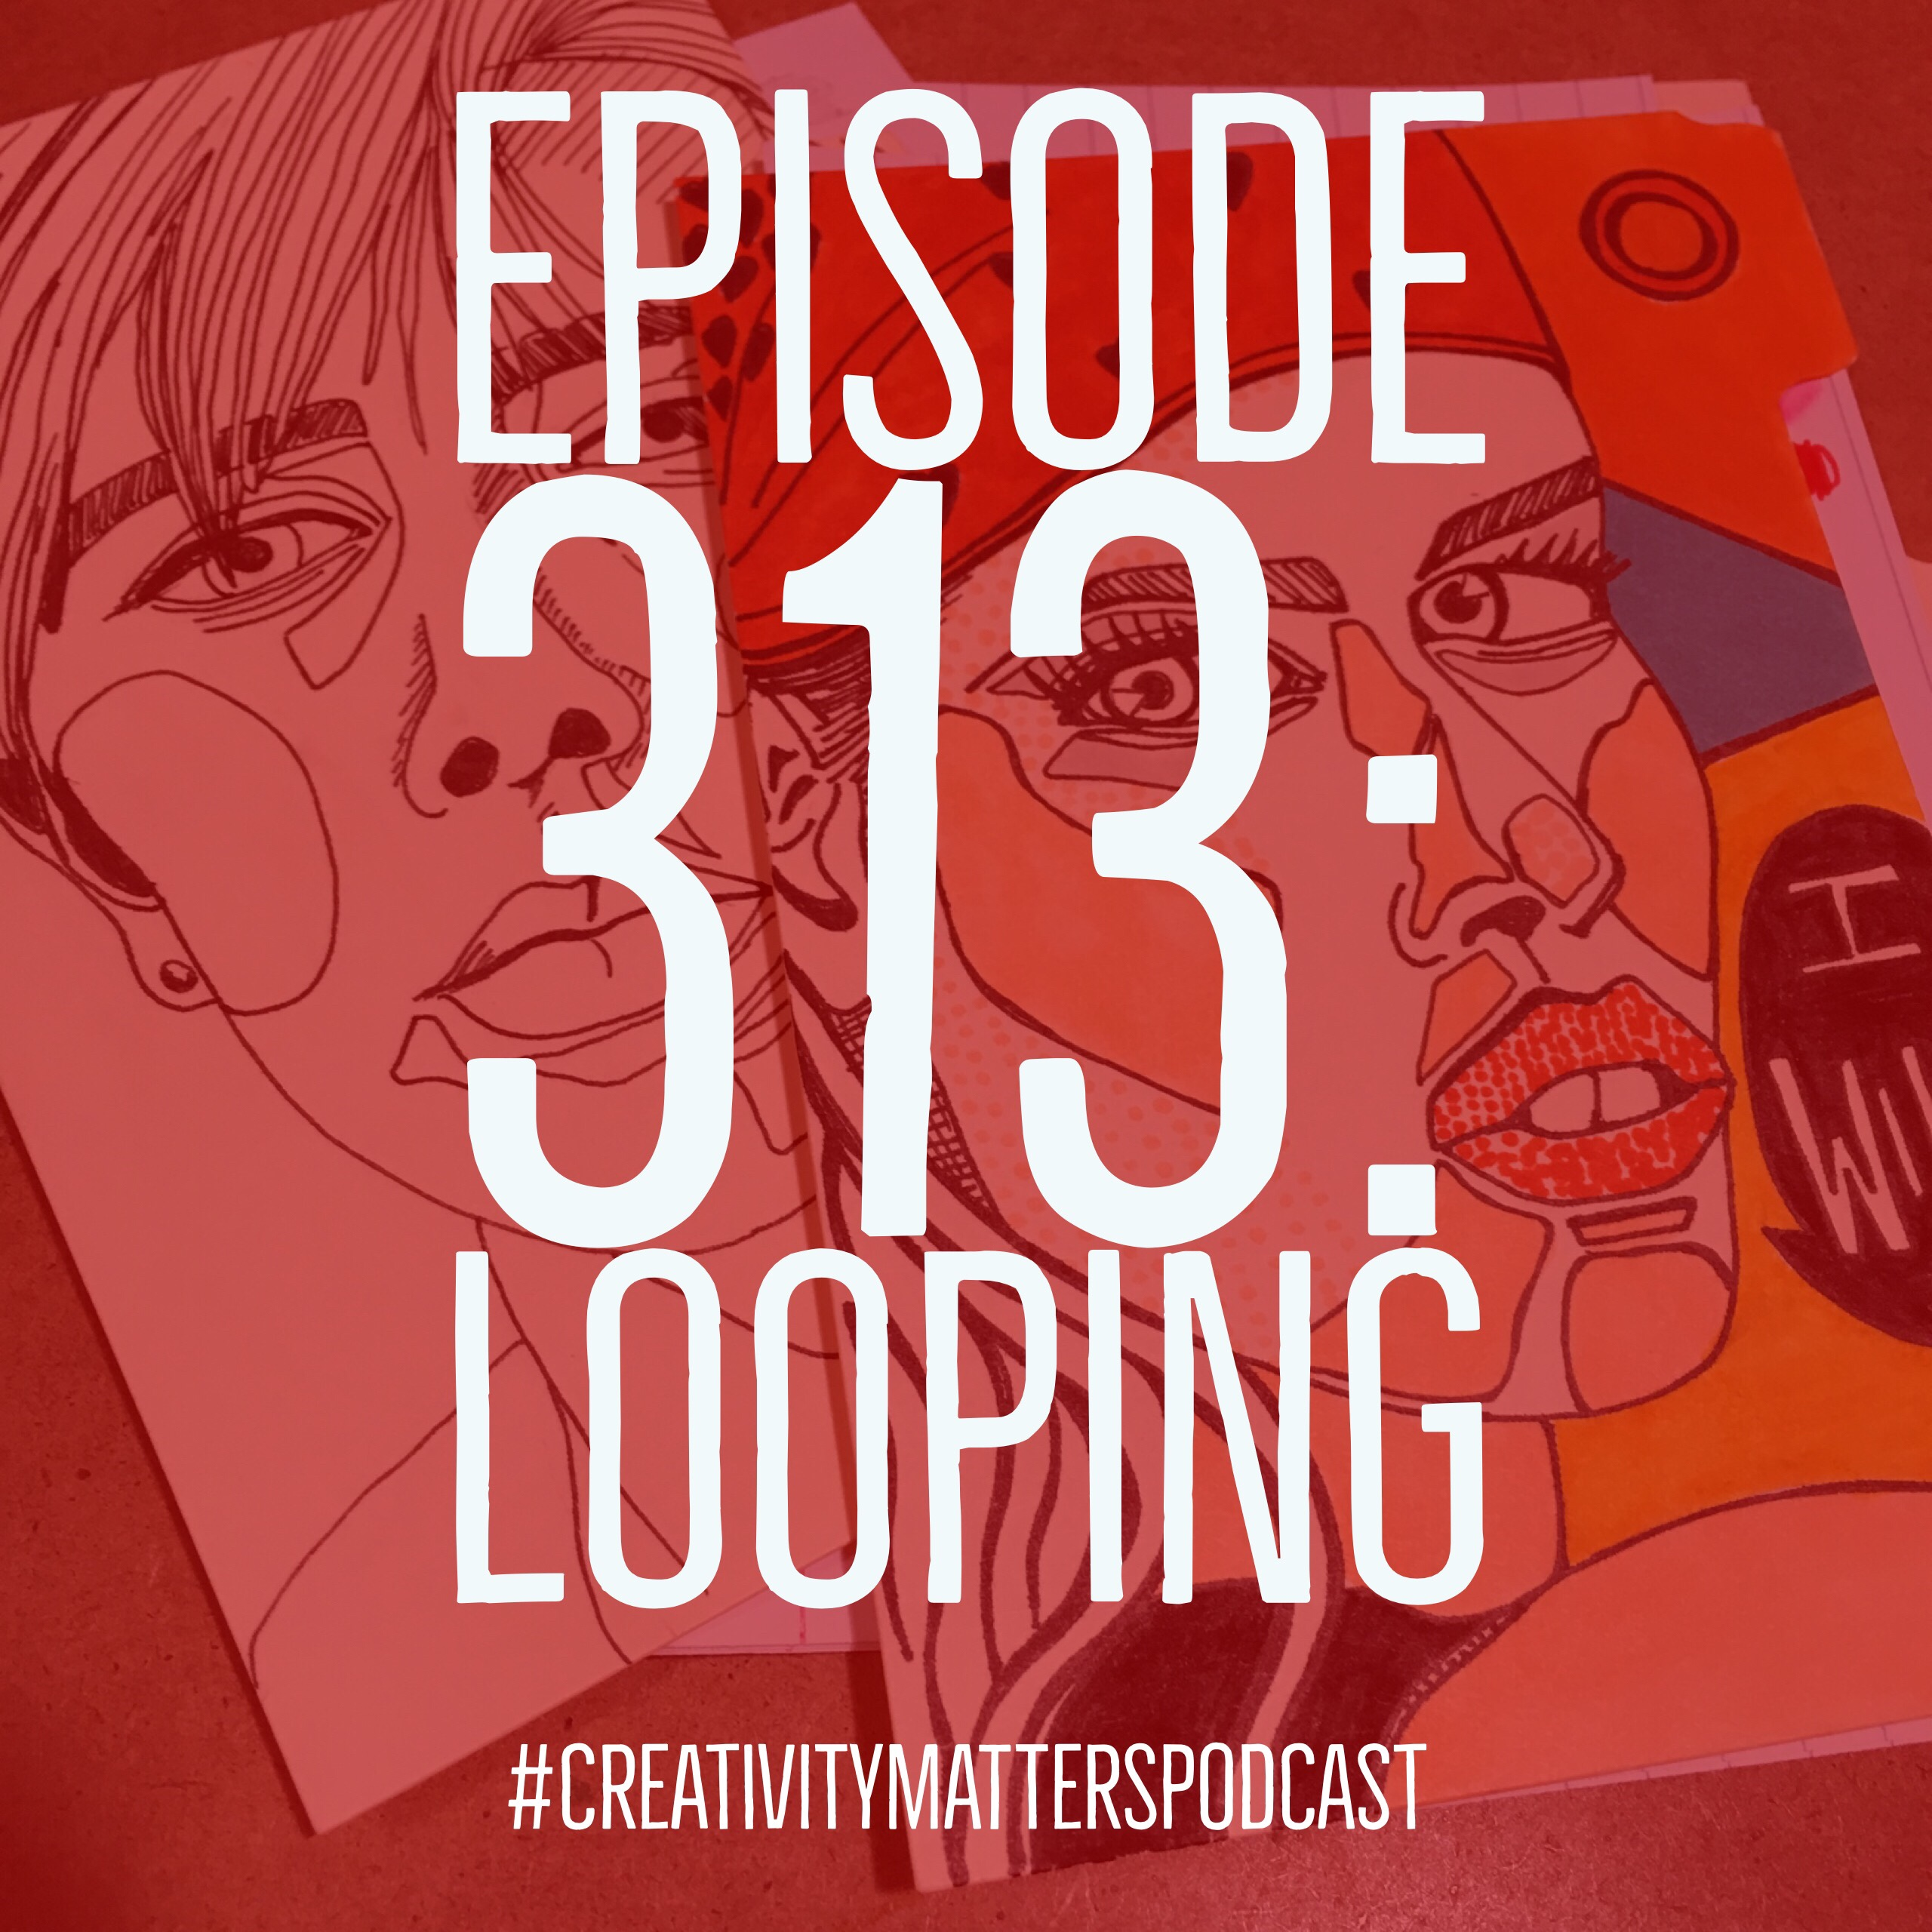 Episode 313: Looping